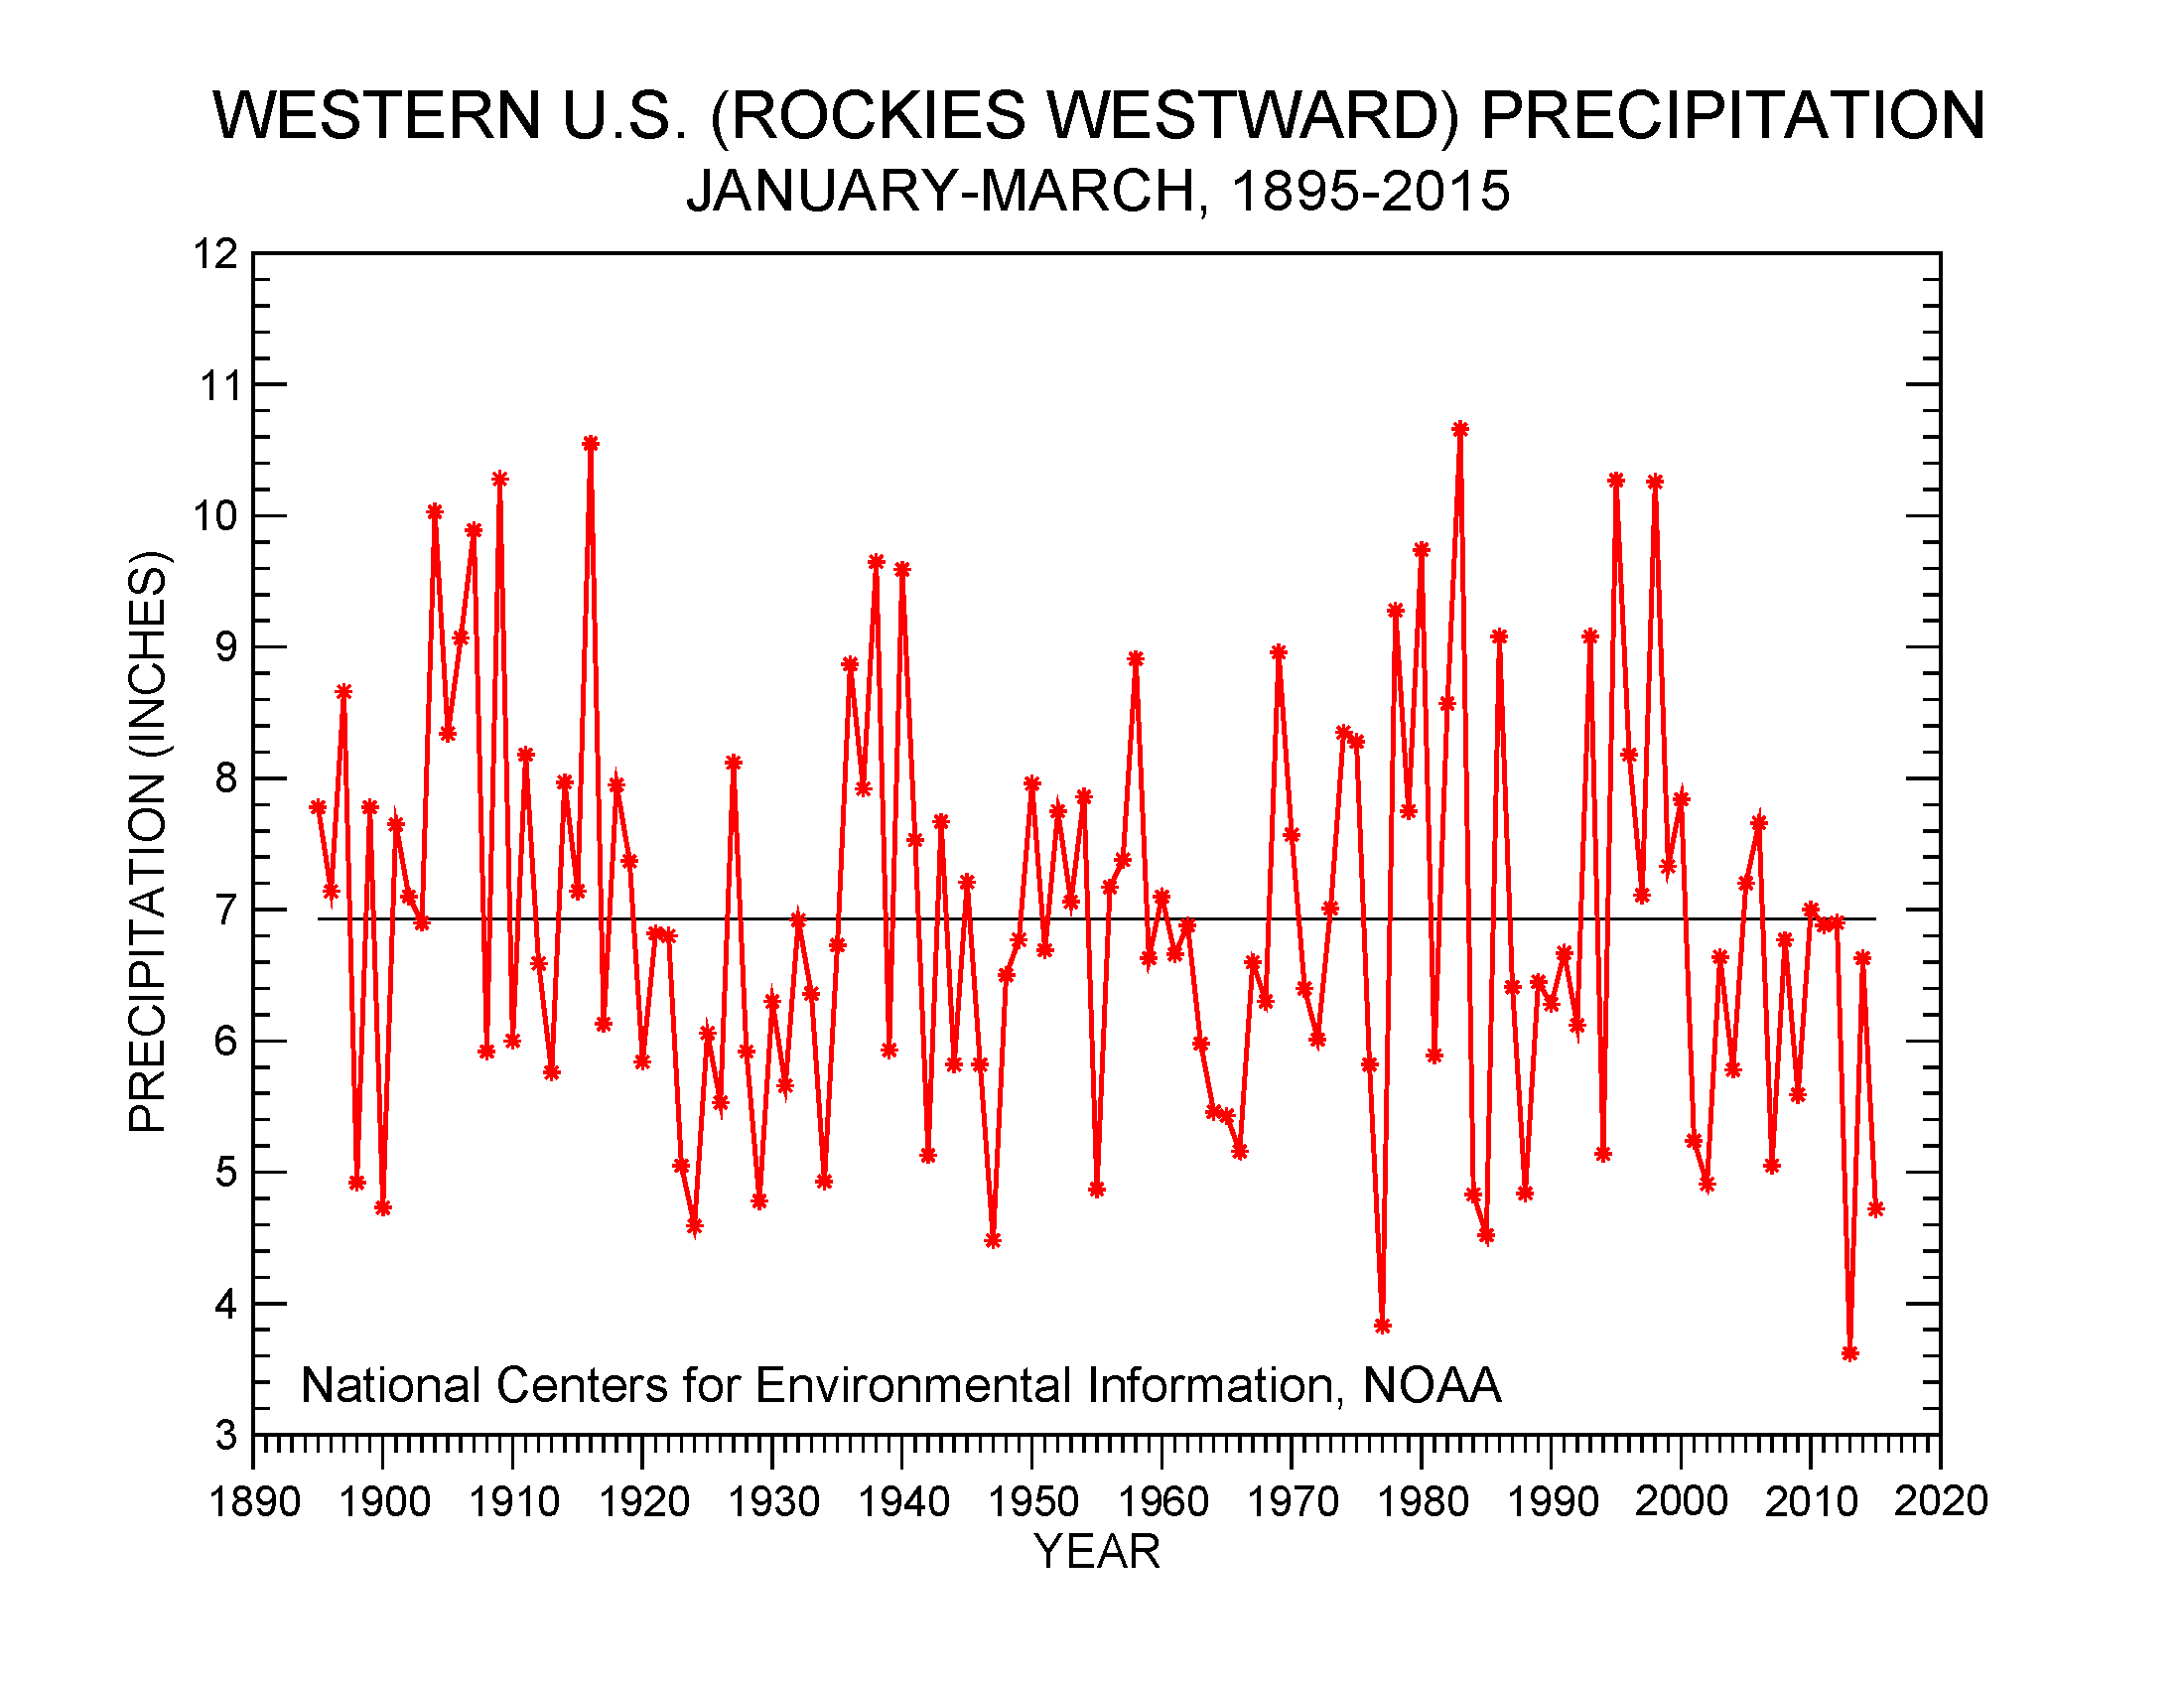 Western U.S. precipitation, January-March, 1895-2015